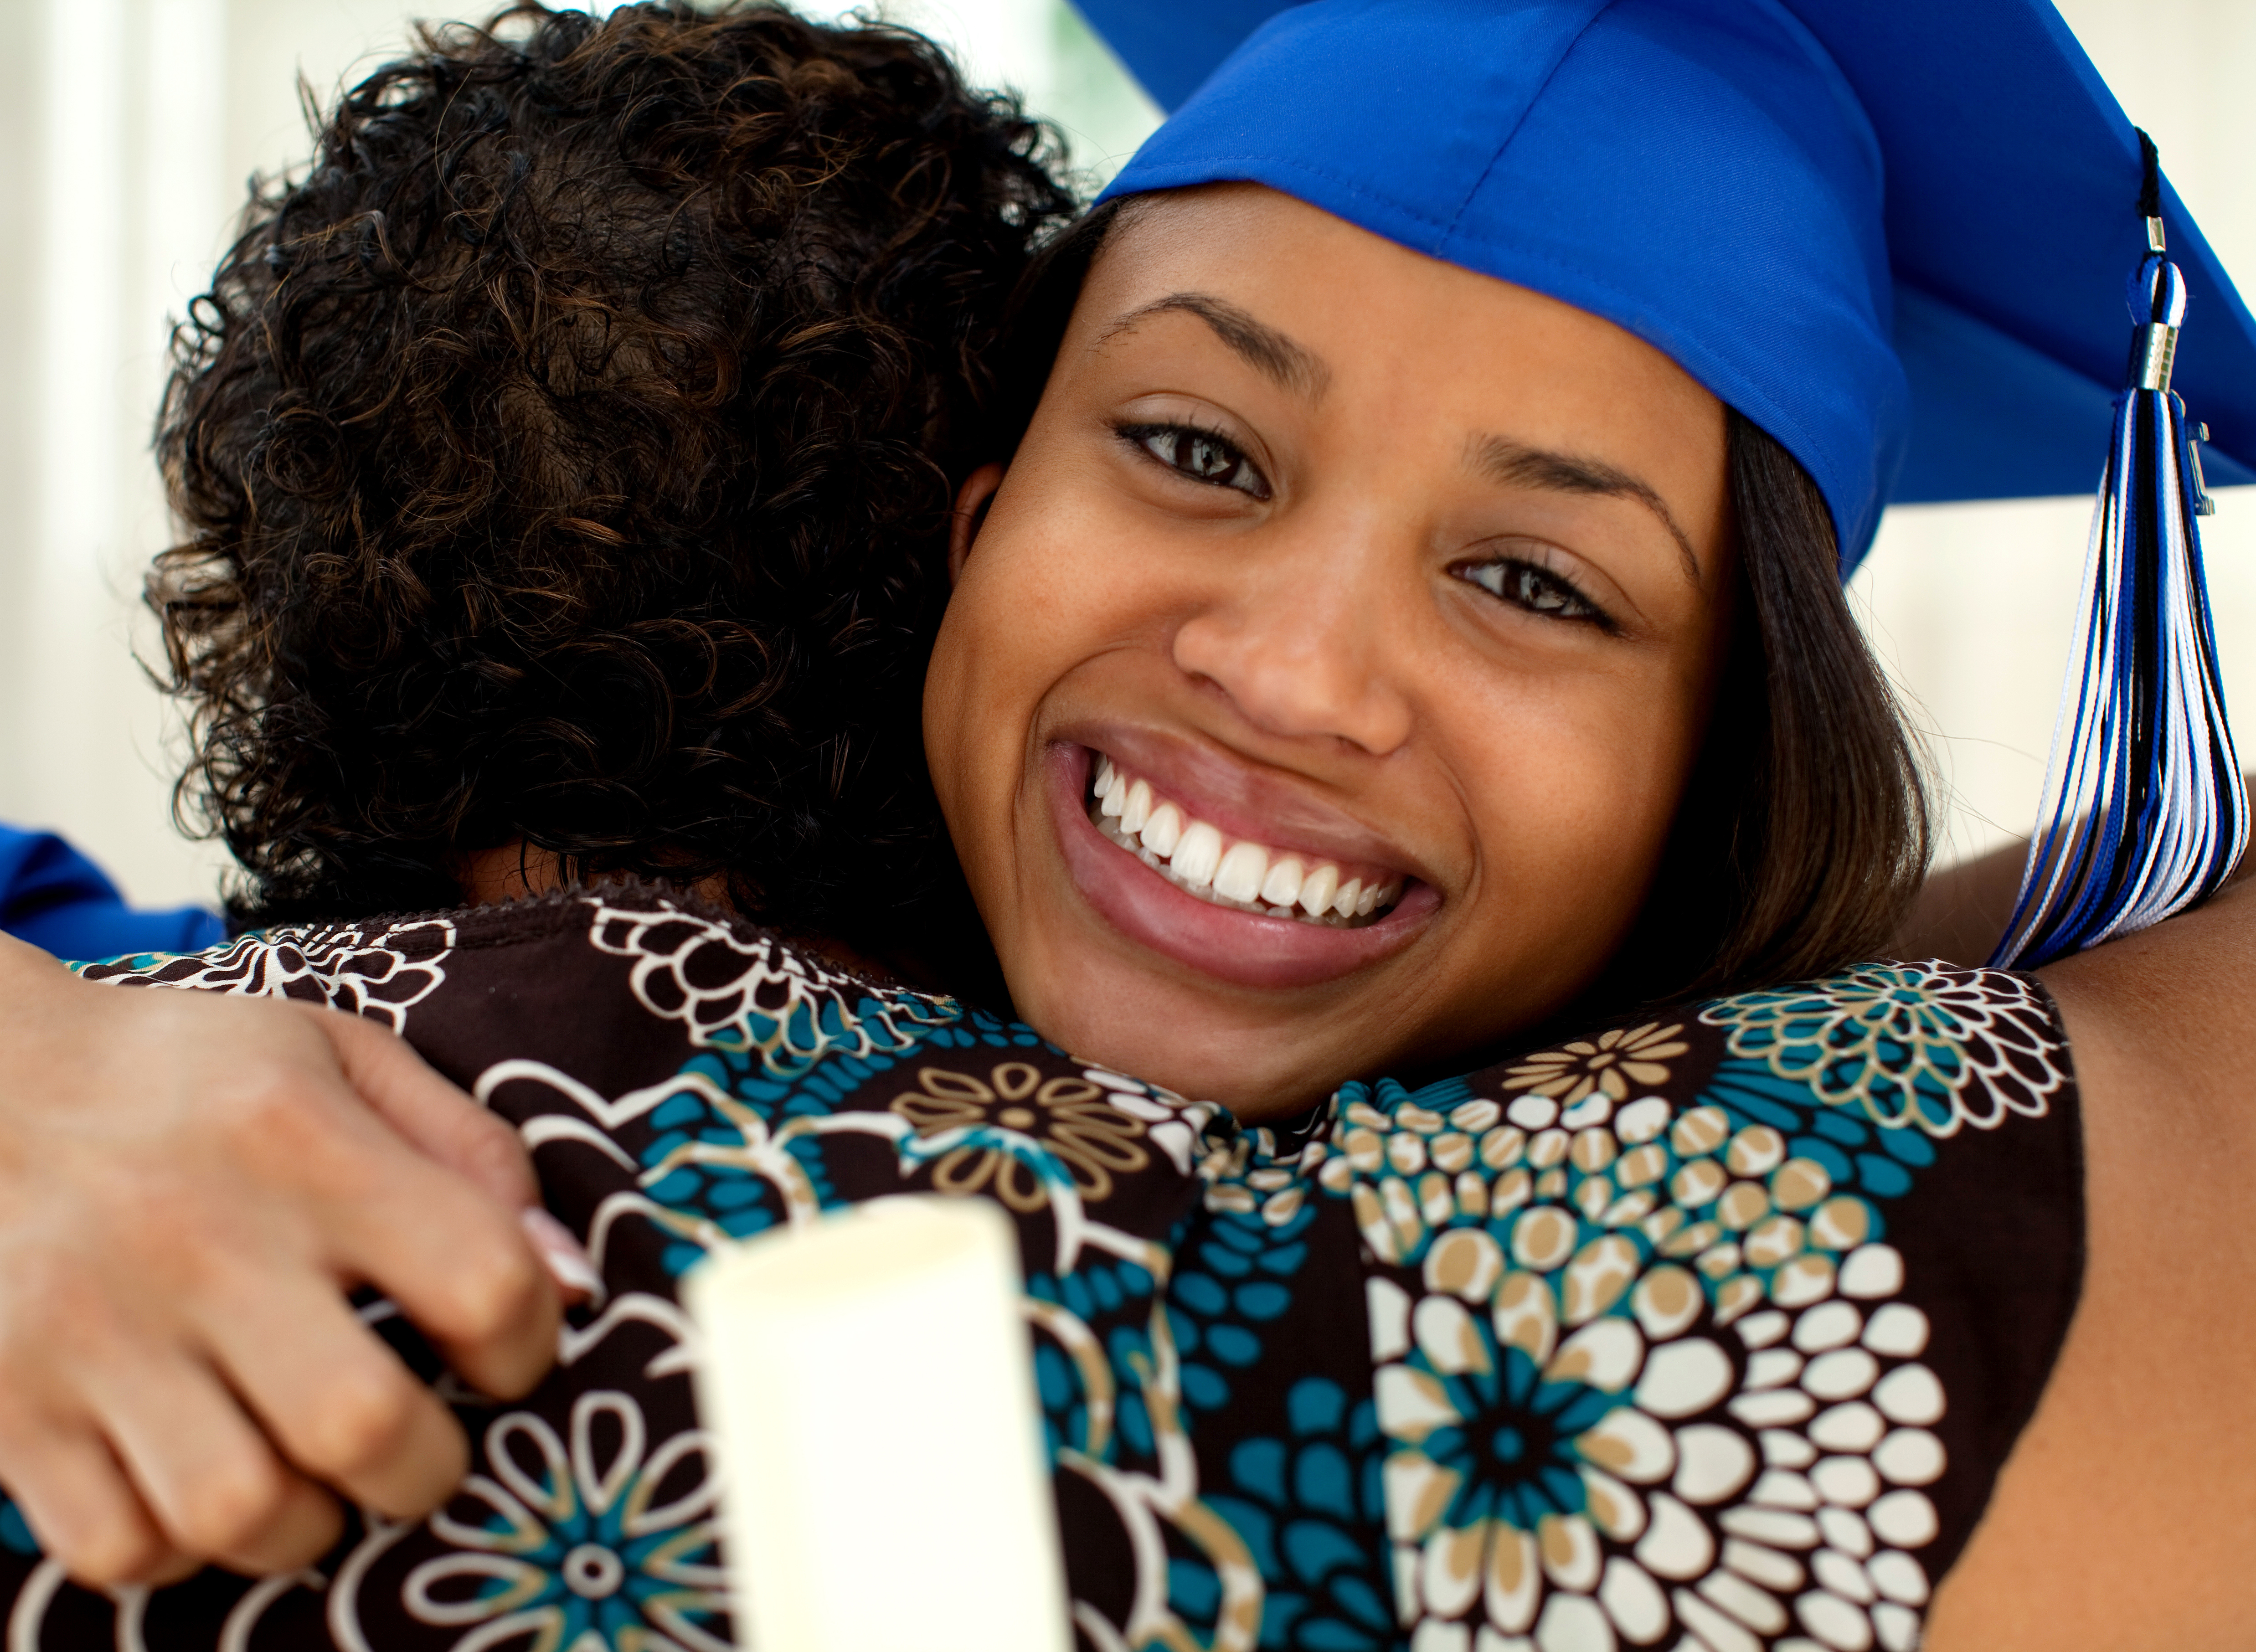 A smiling college graduate in a blue cap and gown hugging her mother